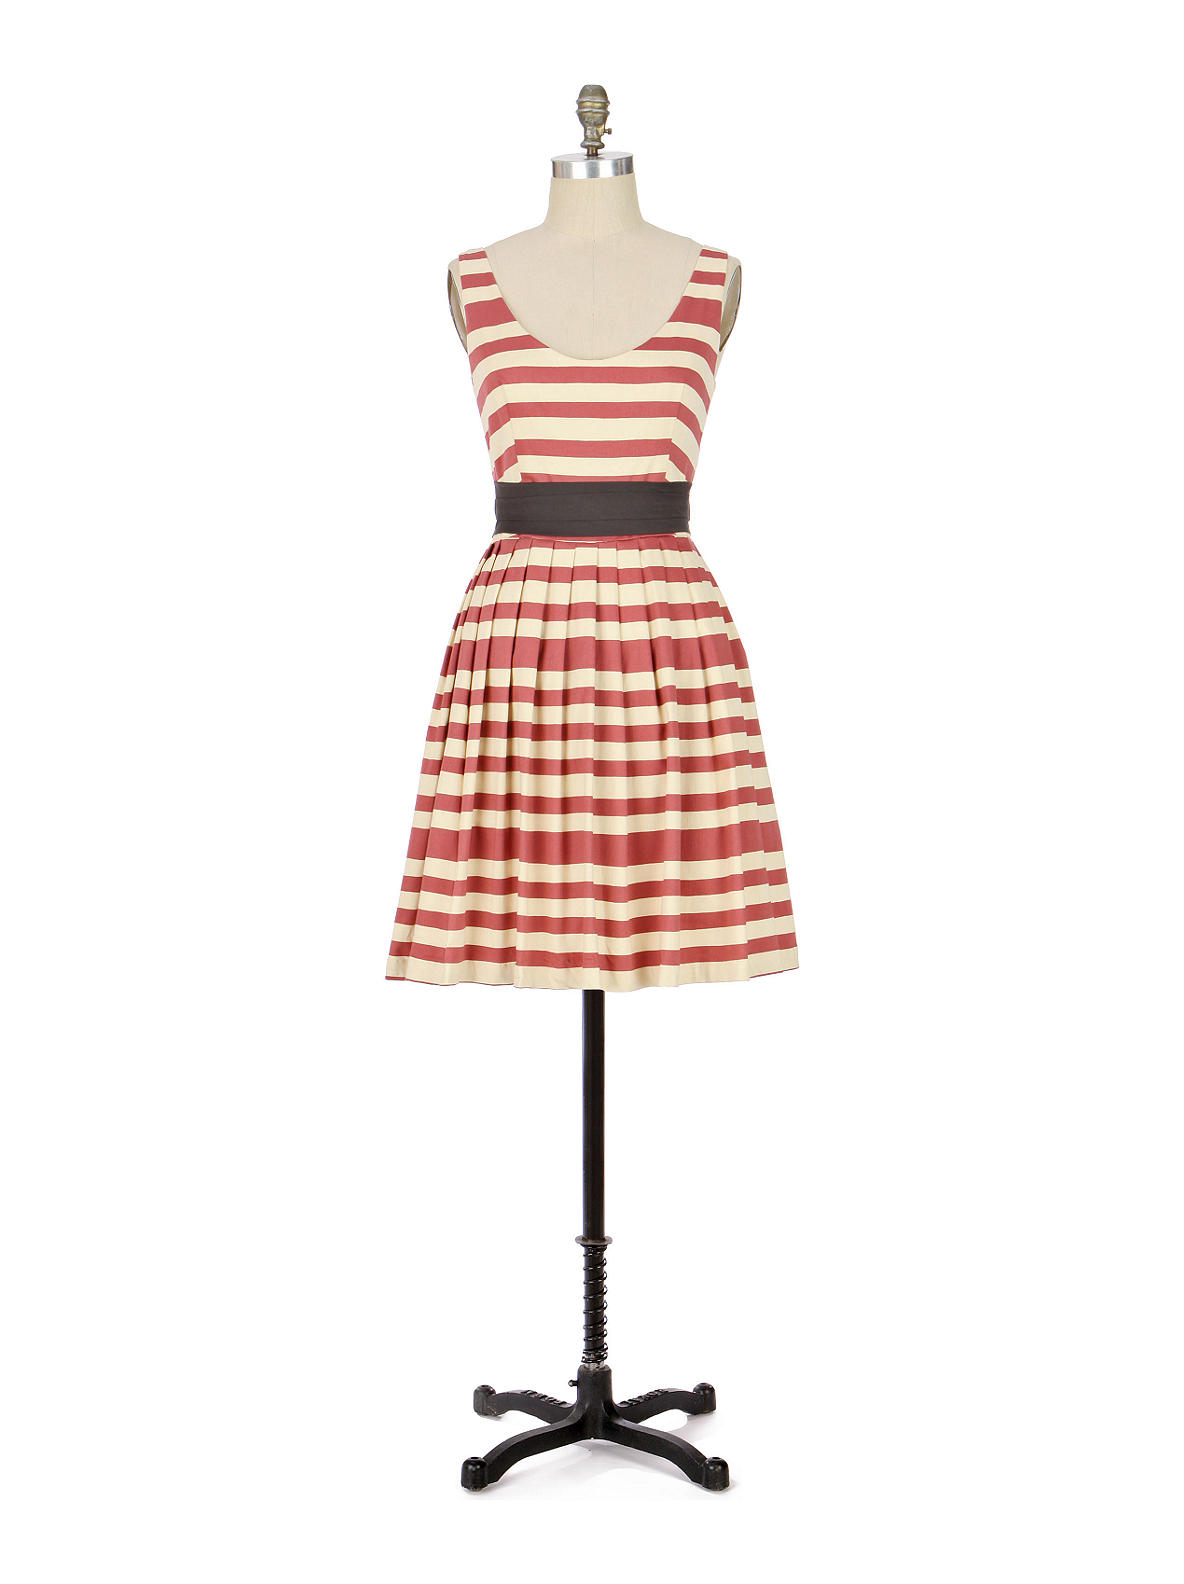 Corey Lynn Calter - Caranday Dress - Anthropologie.com